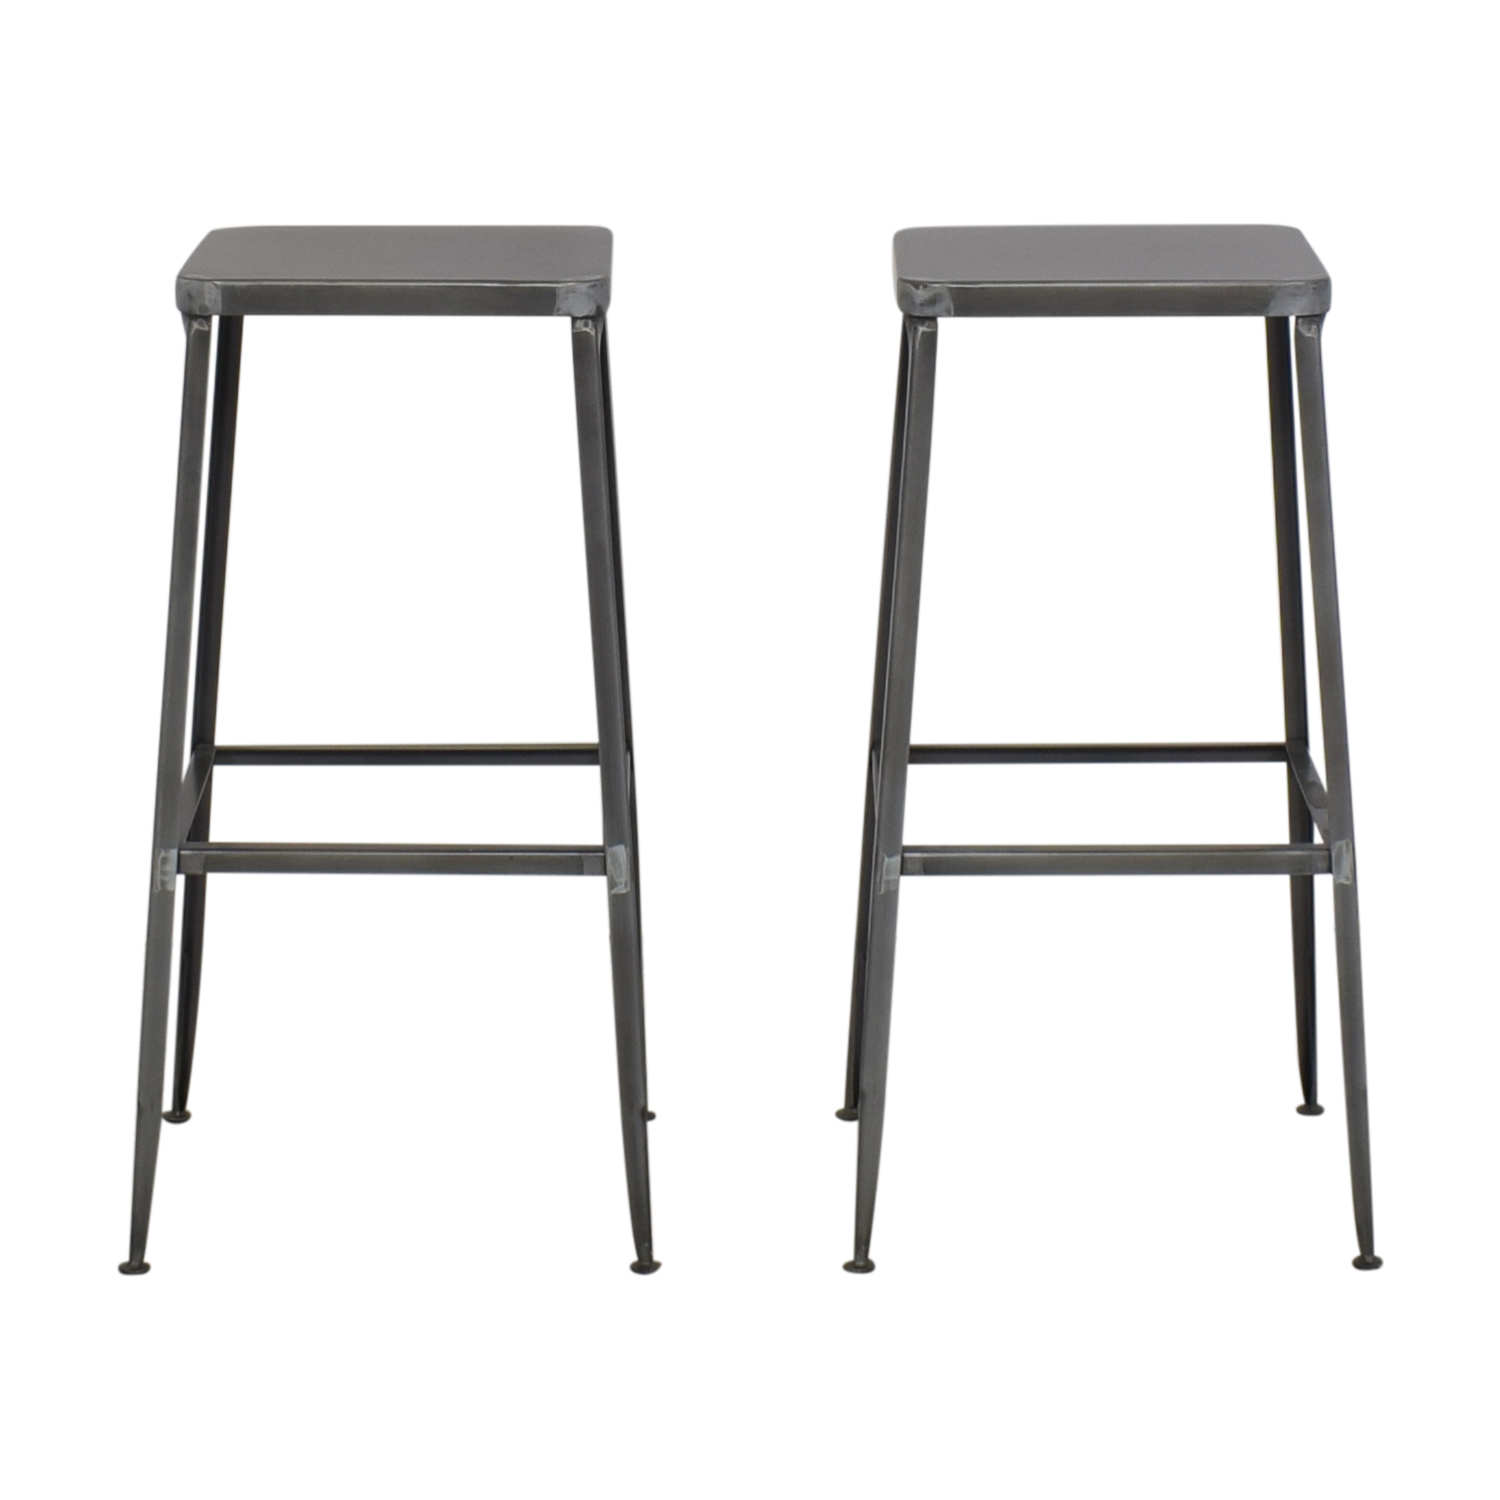 CB2 CB2 Flint Bar Stools grey